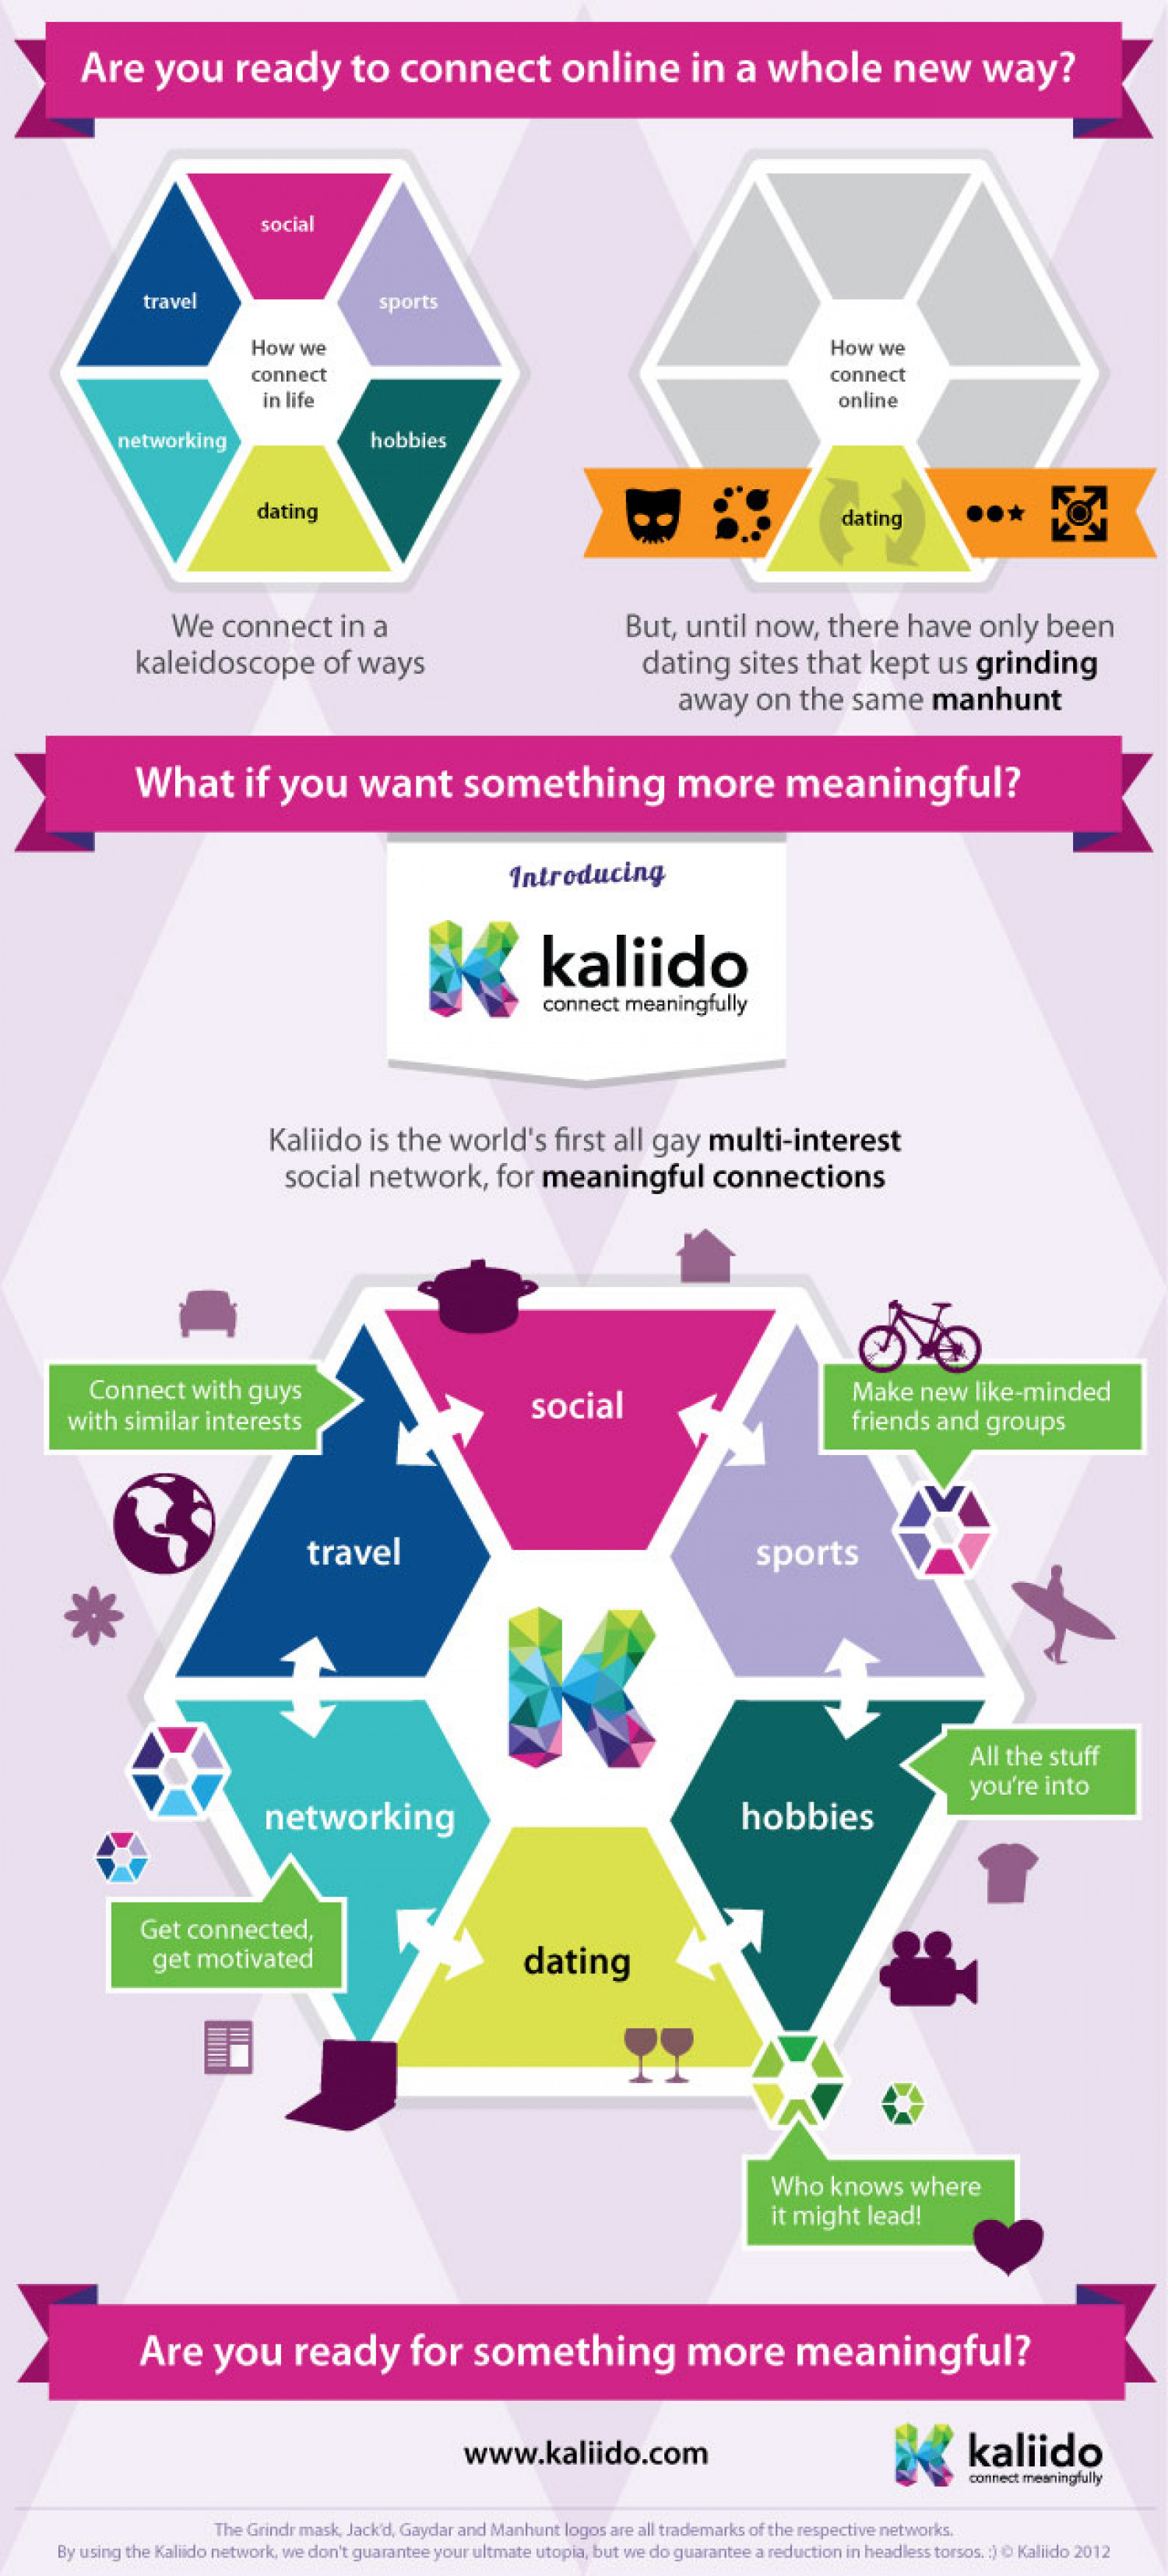 Kaliido - multi-interest online social platform for gay guys, for meaningful connections. Infographic